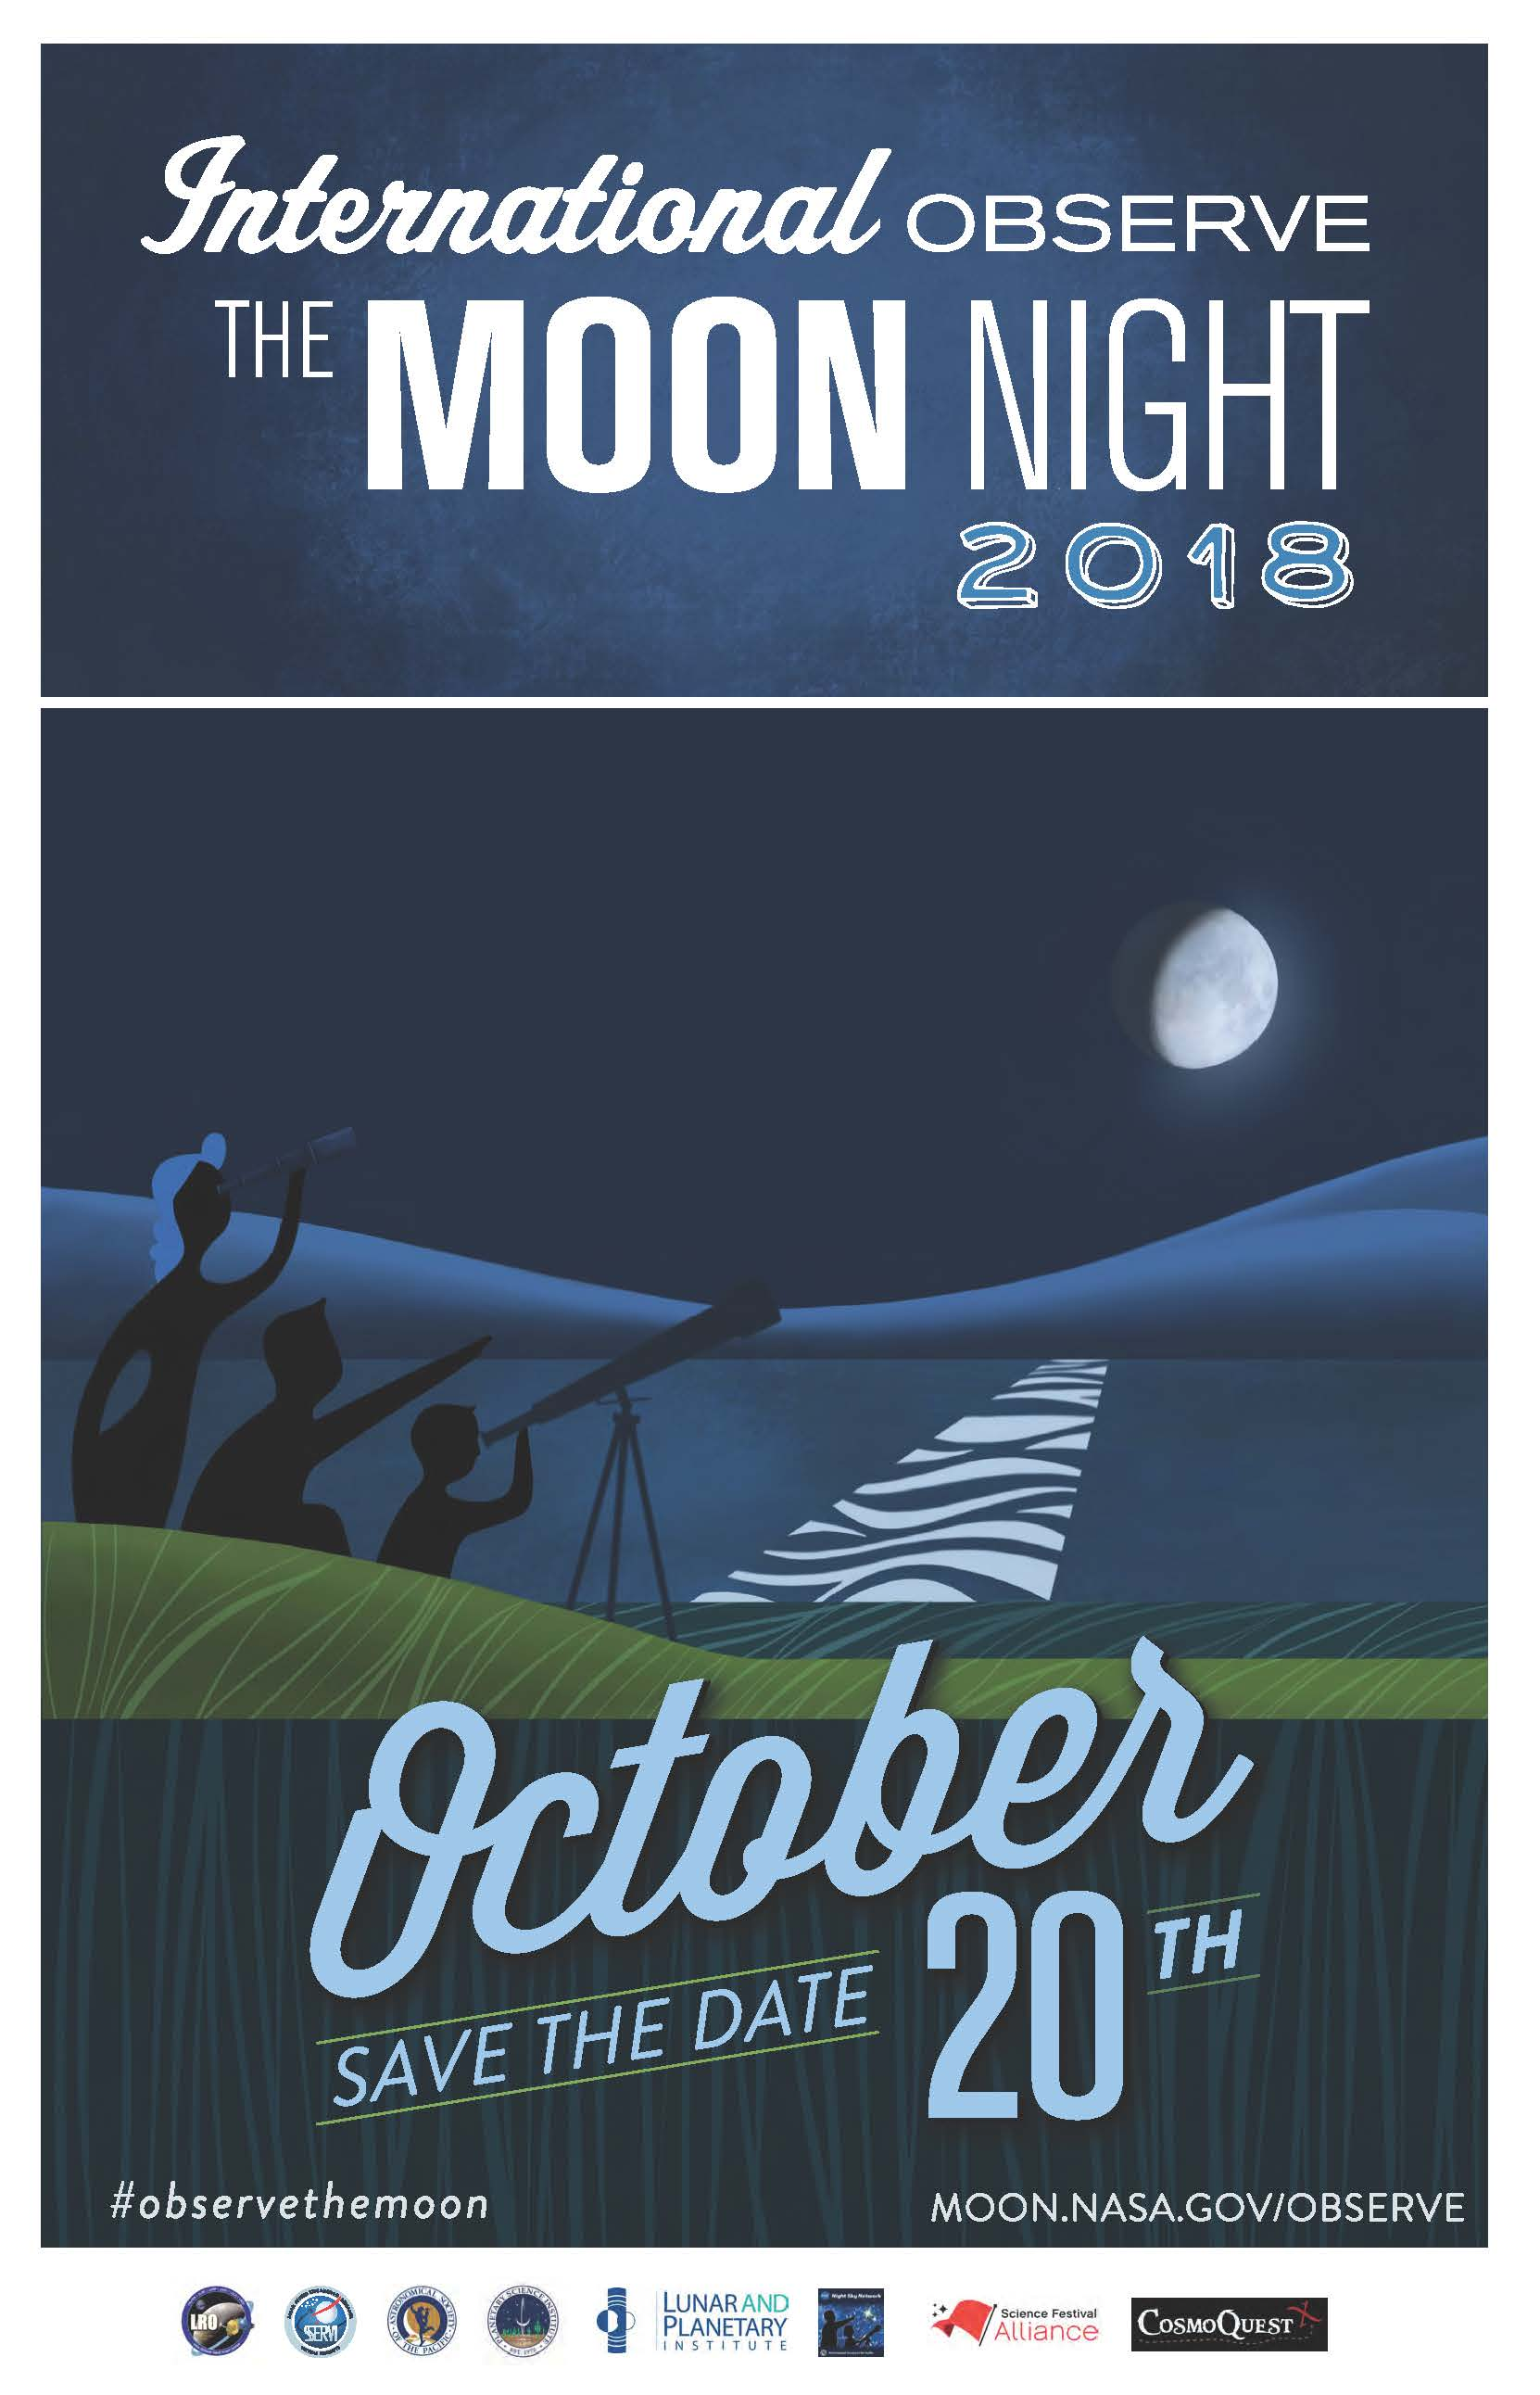 Whimsical poster suggesting people plan to celebrate International Observe the Moon Night on Oct. 20, 2018.